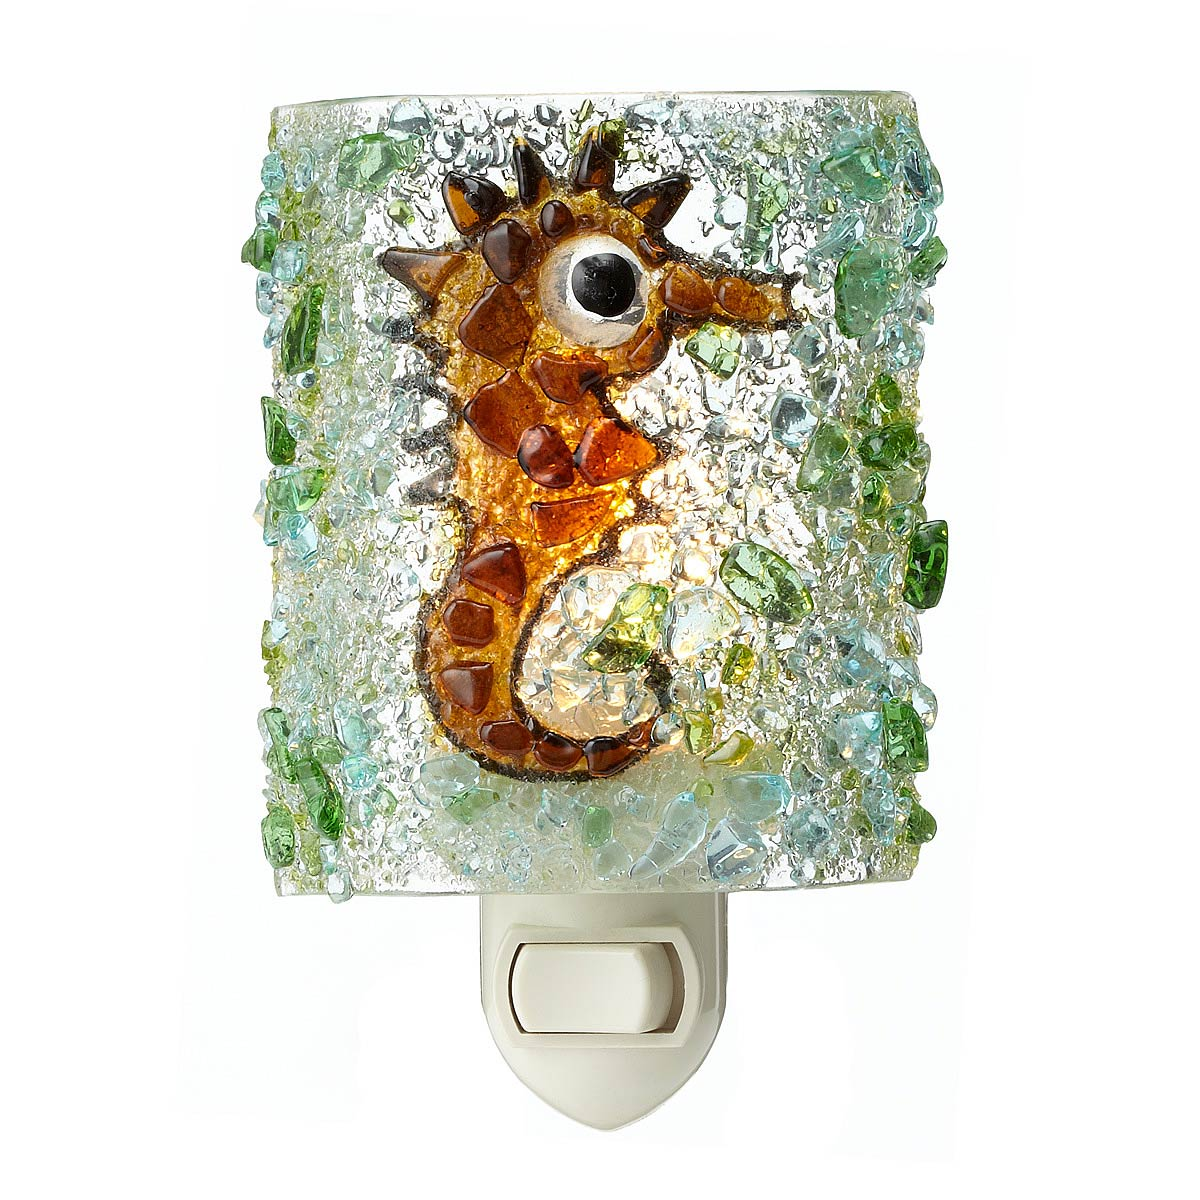 Bathroom Night Light recycled glass seahorse night light | children bedroom, beach